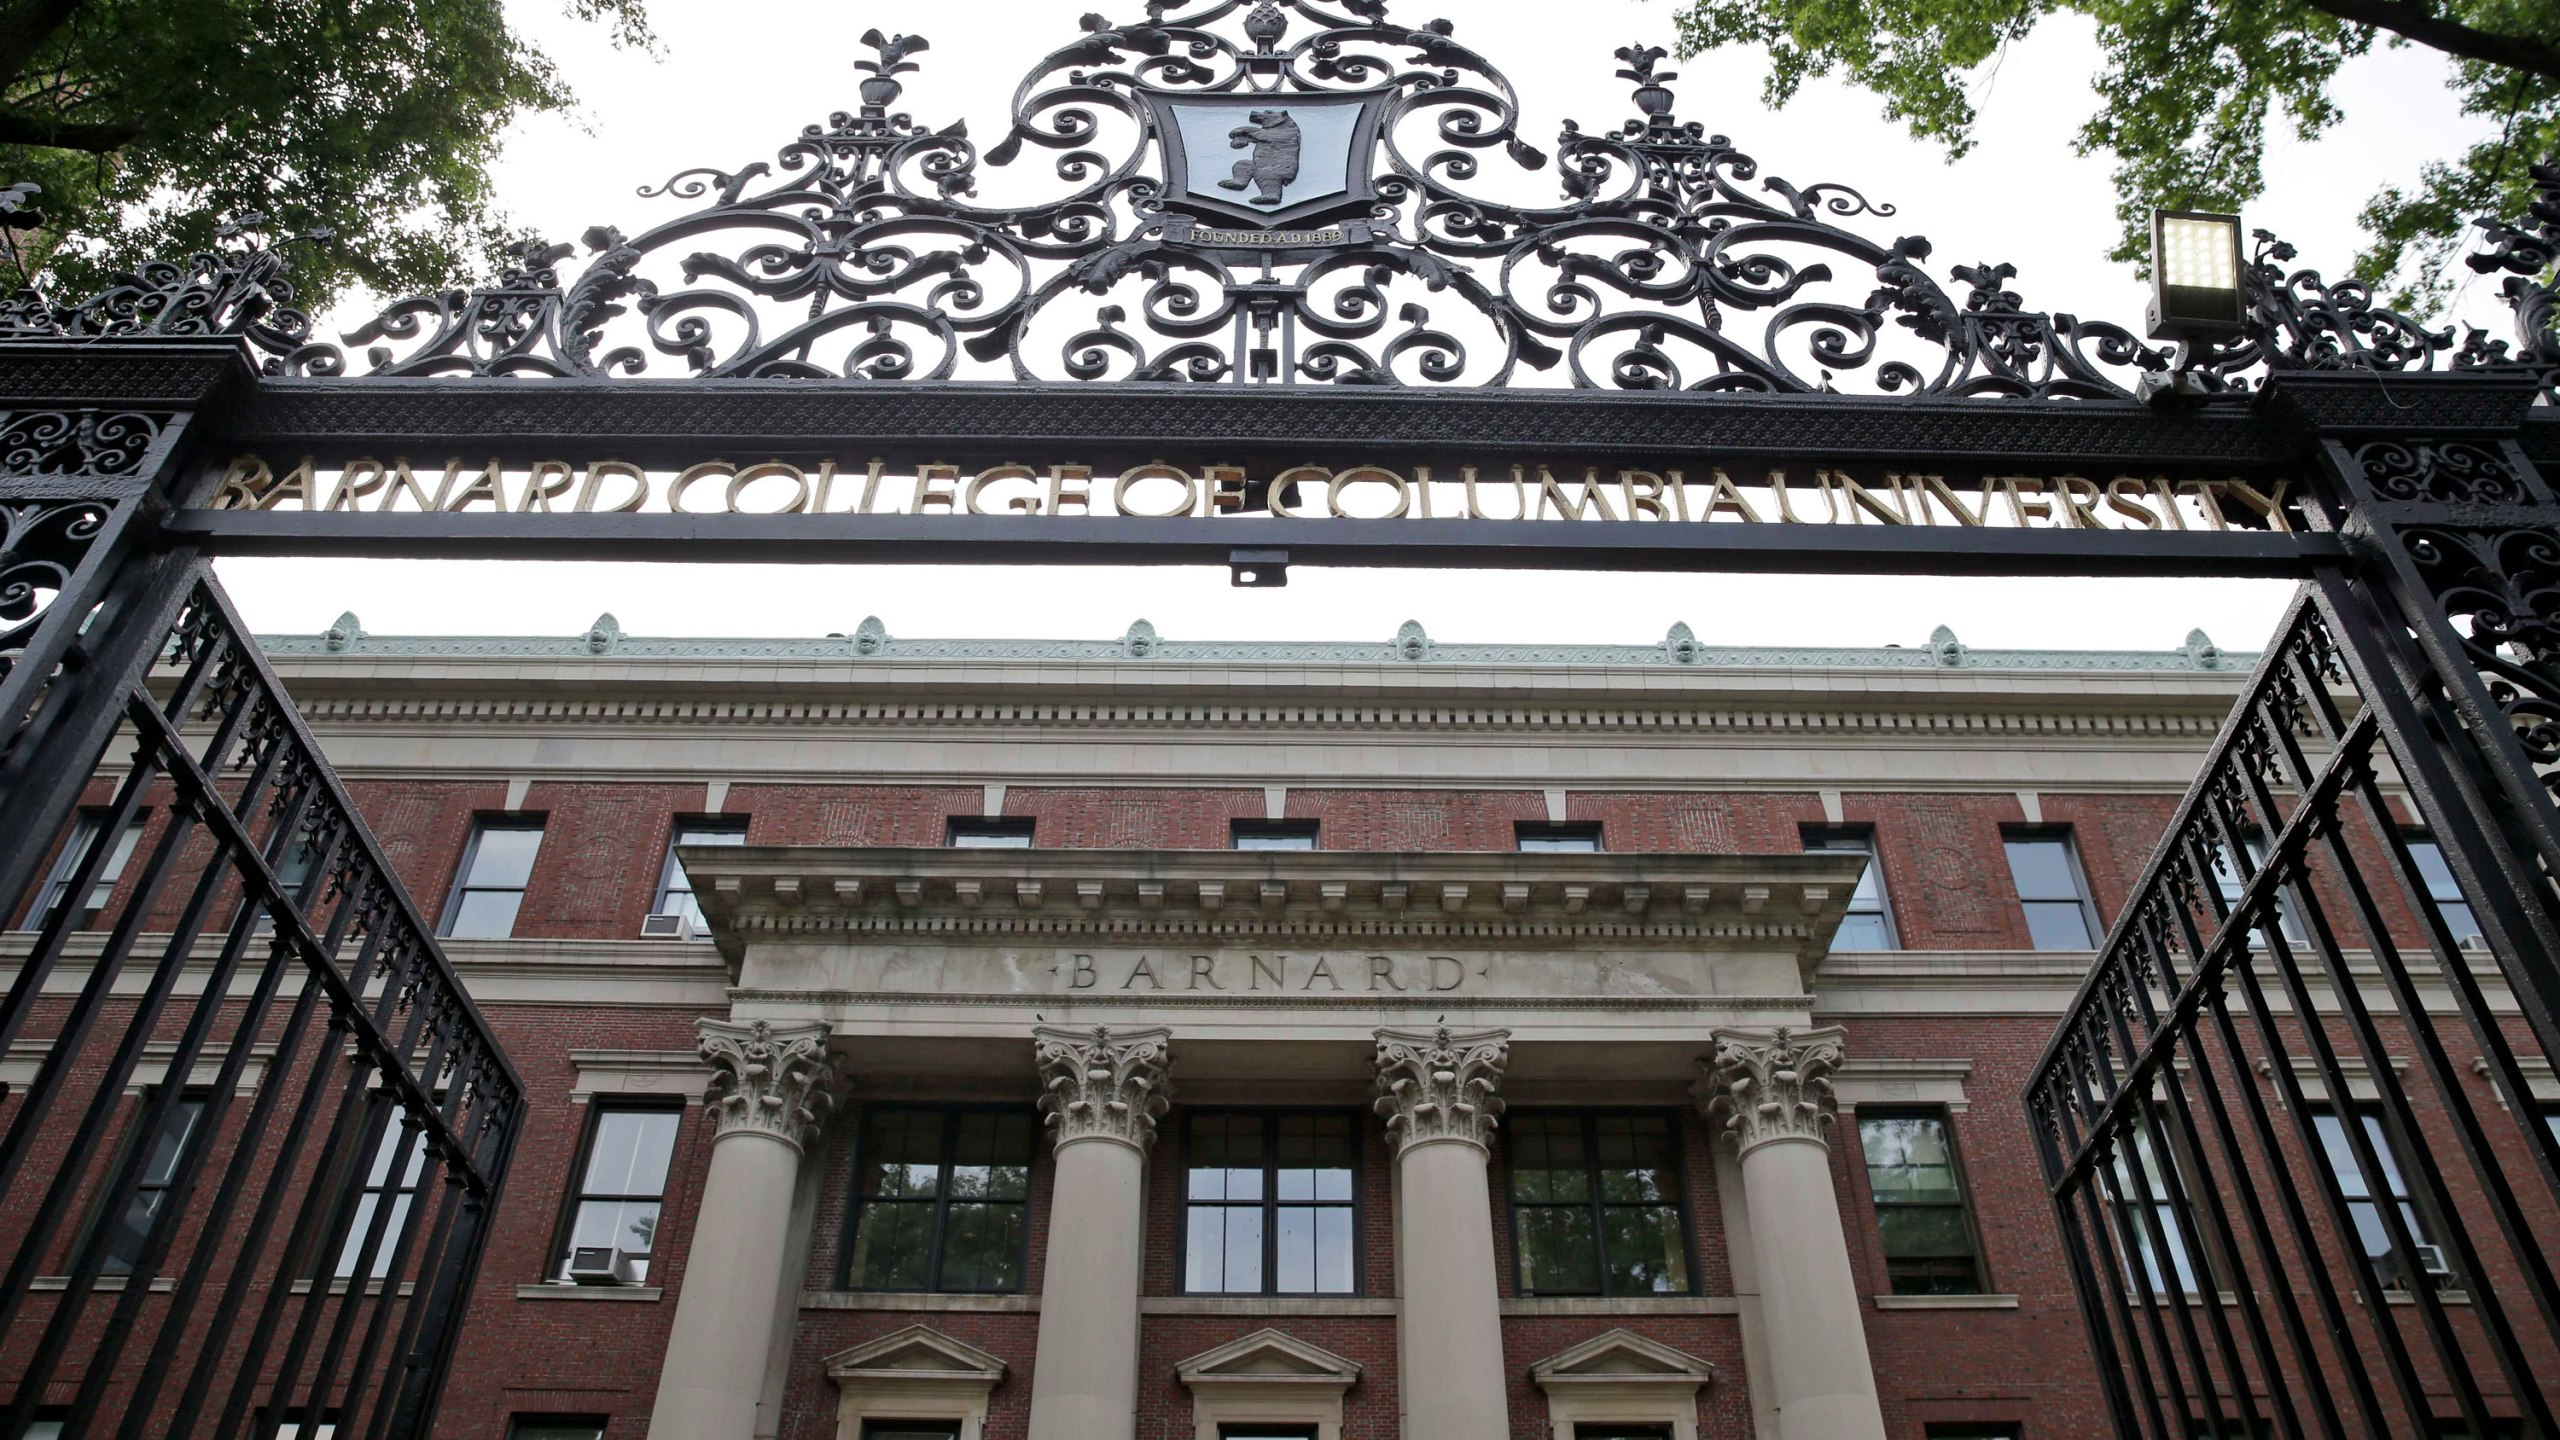 An 18-year-old woman who investigators believe to be a Barnard College student died after she was found with several stab wounds just blocks from the school, a law enforcement official said. (Credit: Seth Wenig/AP via CNN)